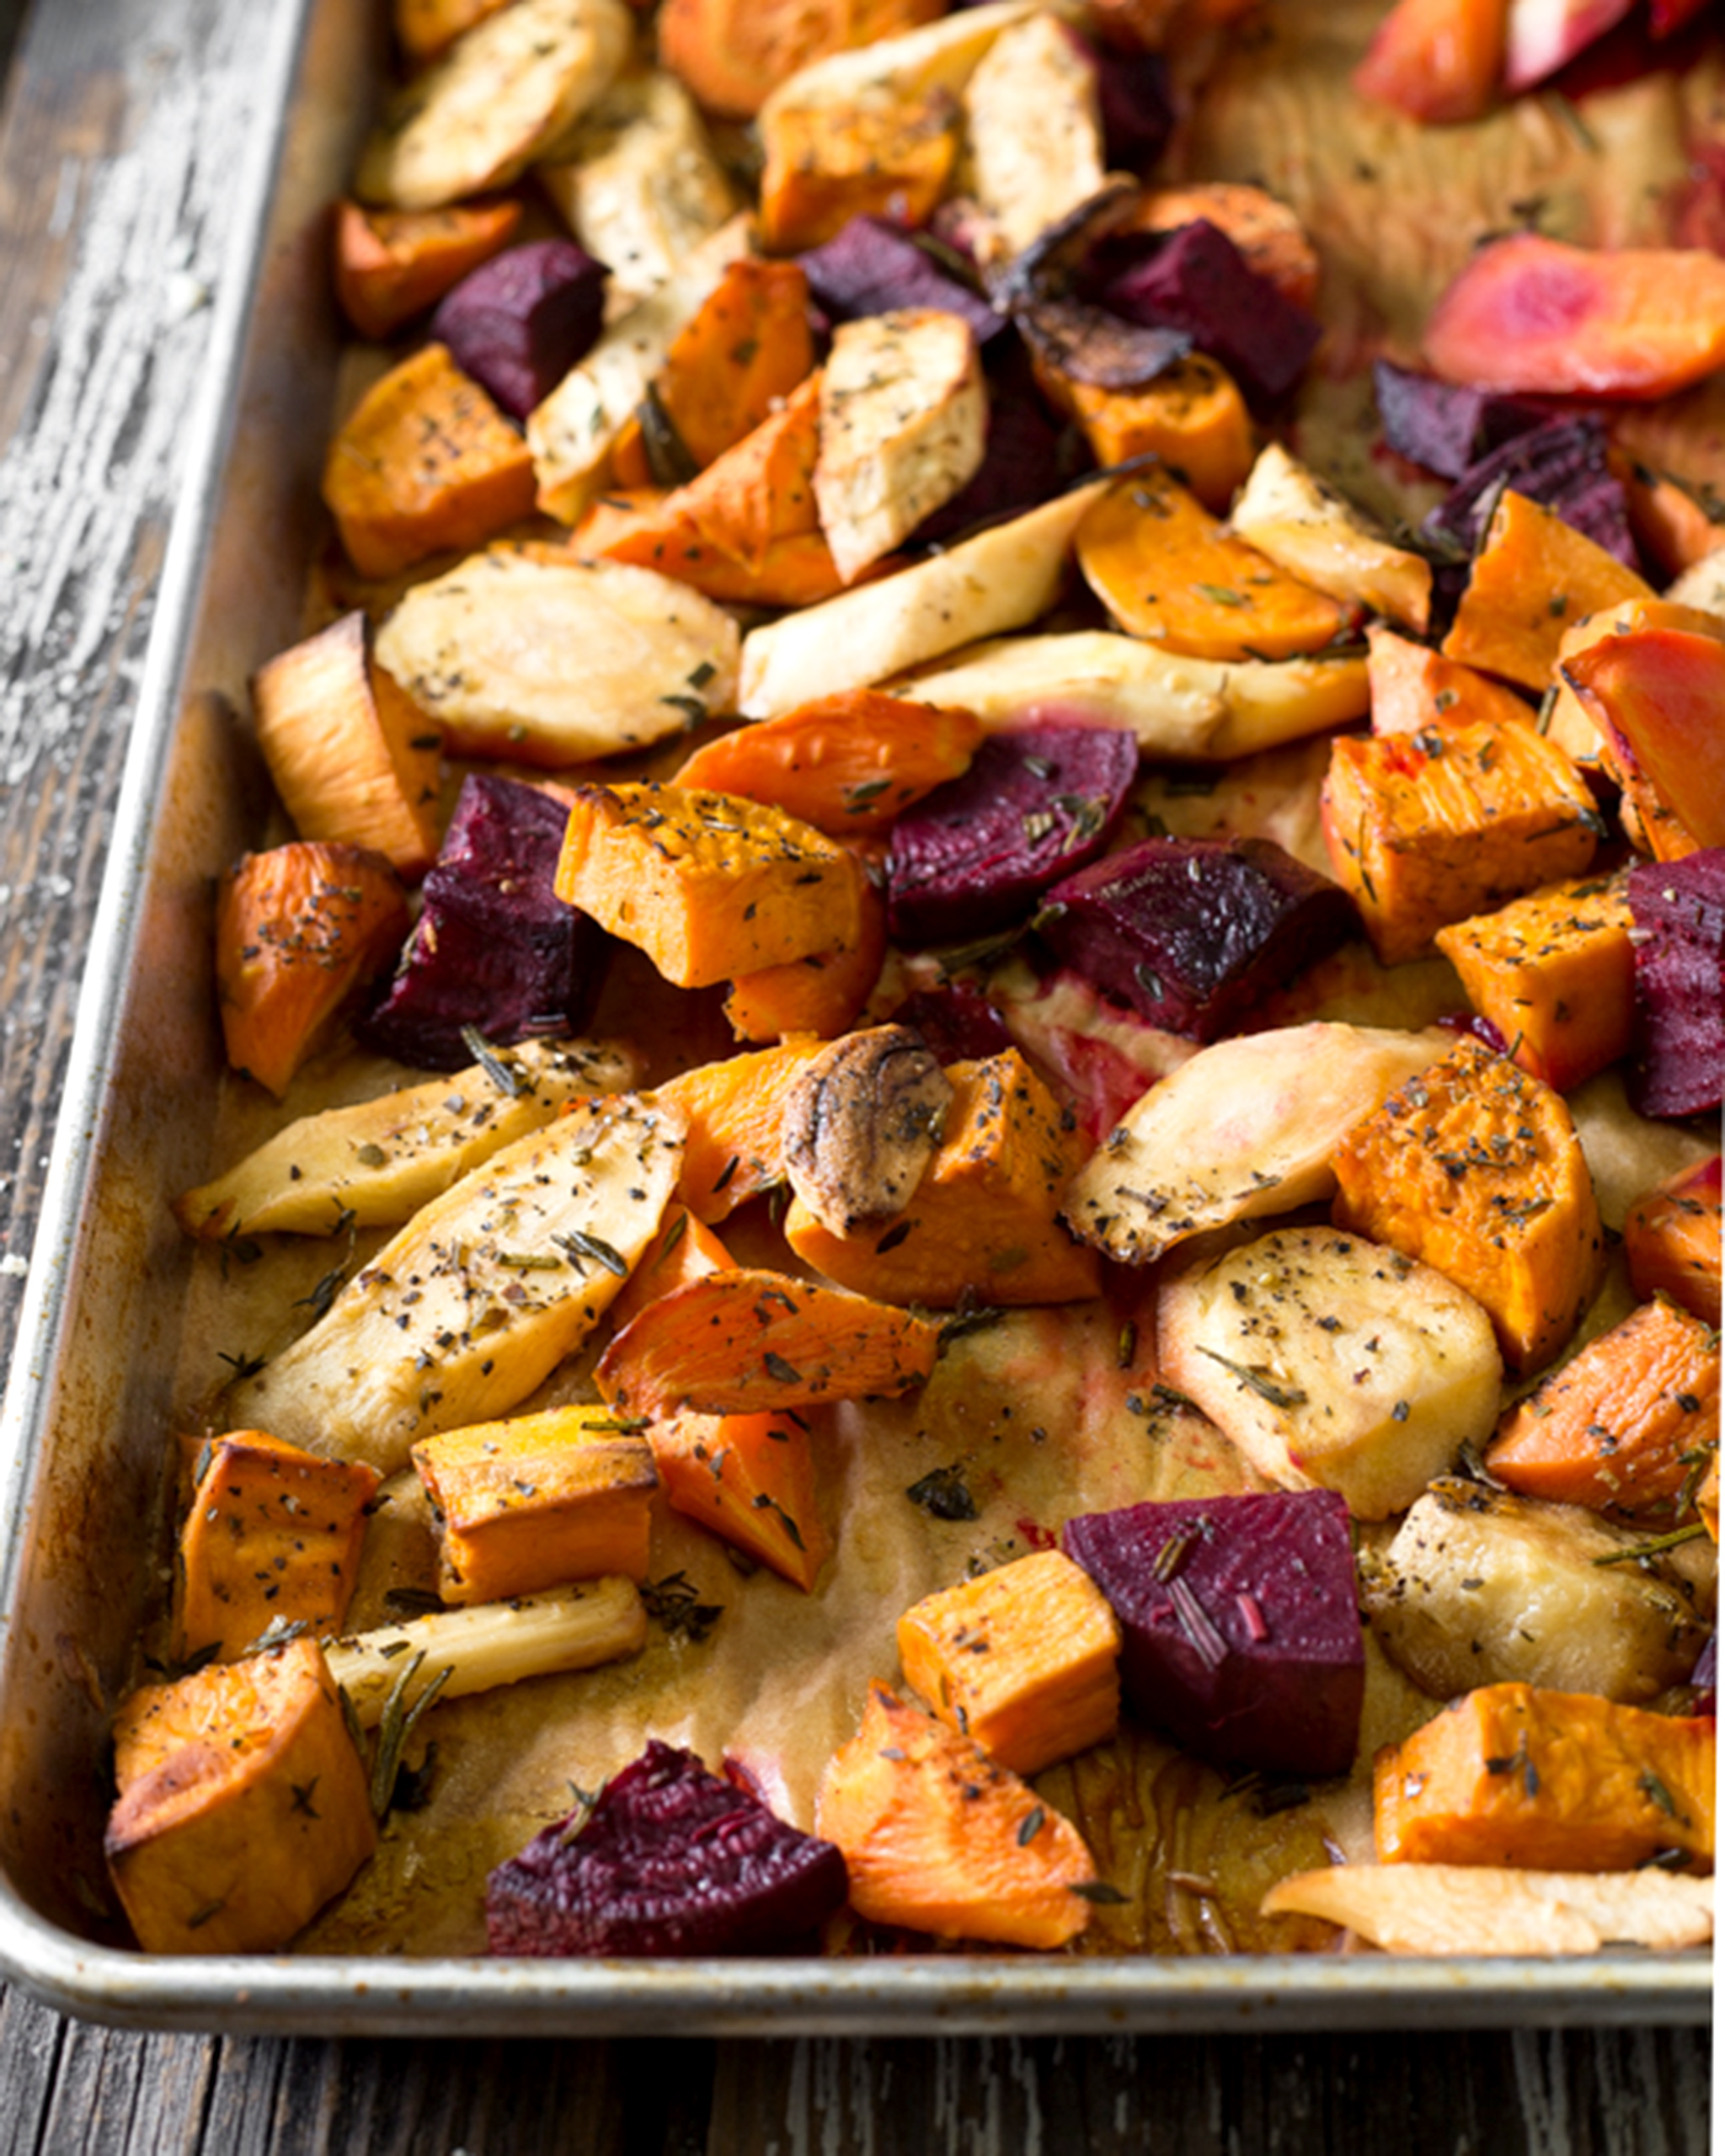 A photo of an finished sheet of our herb roasted root vegetable recipe.